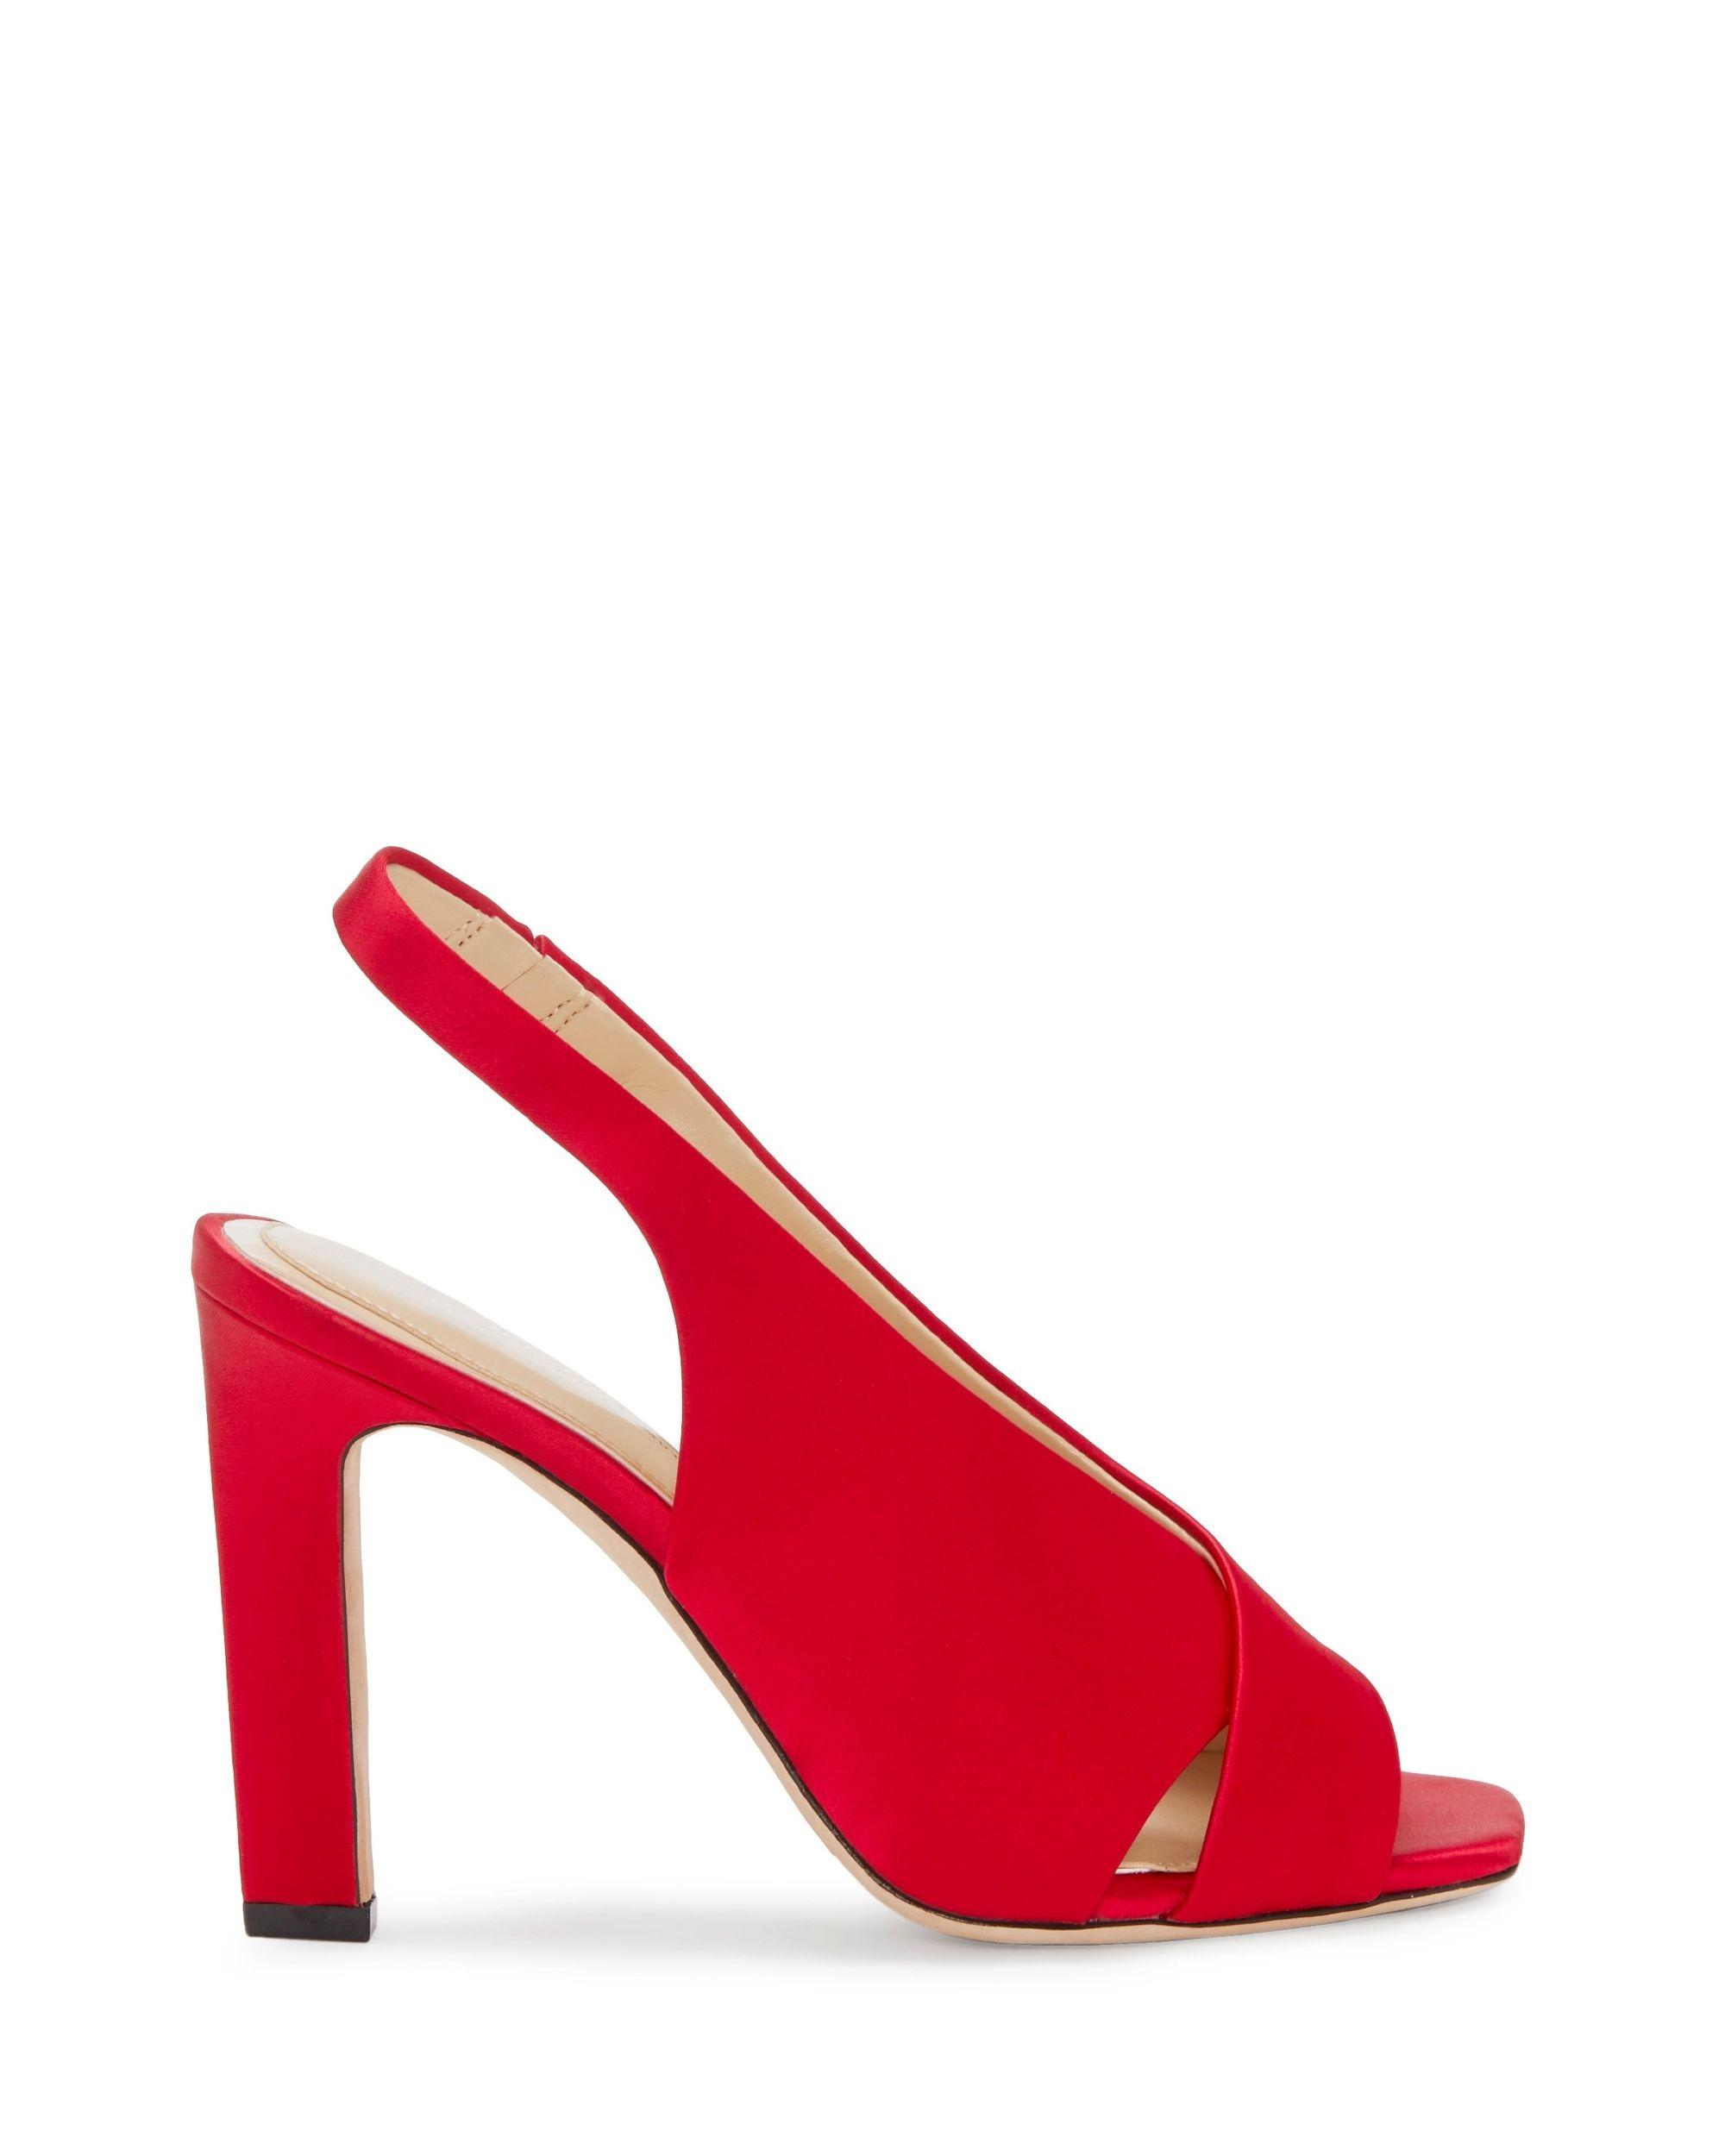 e8a61ba390b Lyst - Vince Camuto Imagine Wrennie – Satin Peep-toe Sandal in Red - Save  47%